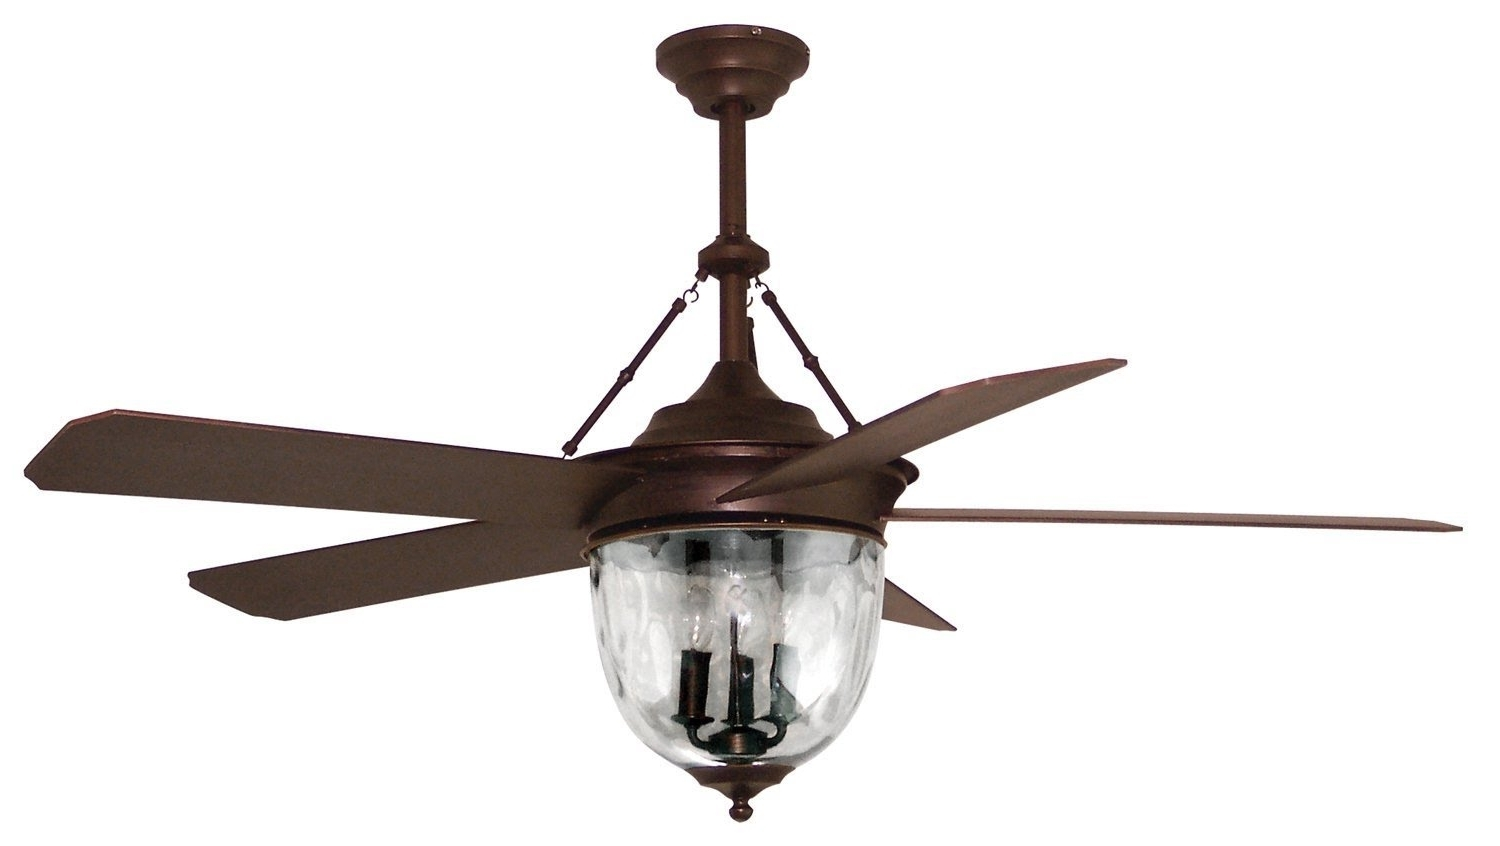 Outdoor Ceiling Fan With Light And Remote Fresh Lowes Ceiling Fans Regarding Well Known Outdoor Ceiling Fans With Lights And Remote Control (Gallery 15 of 20)